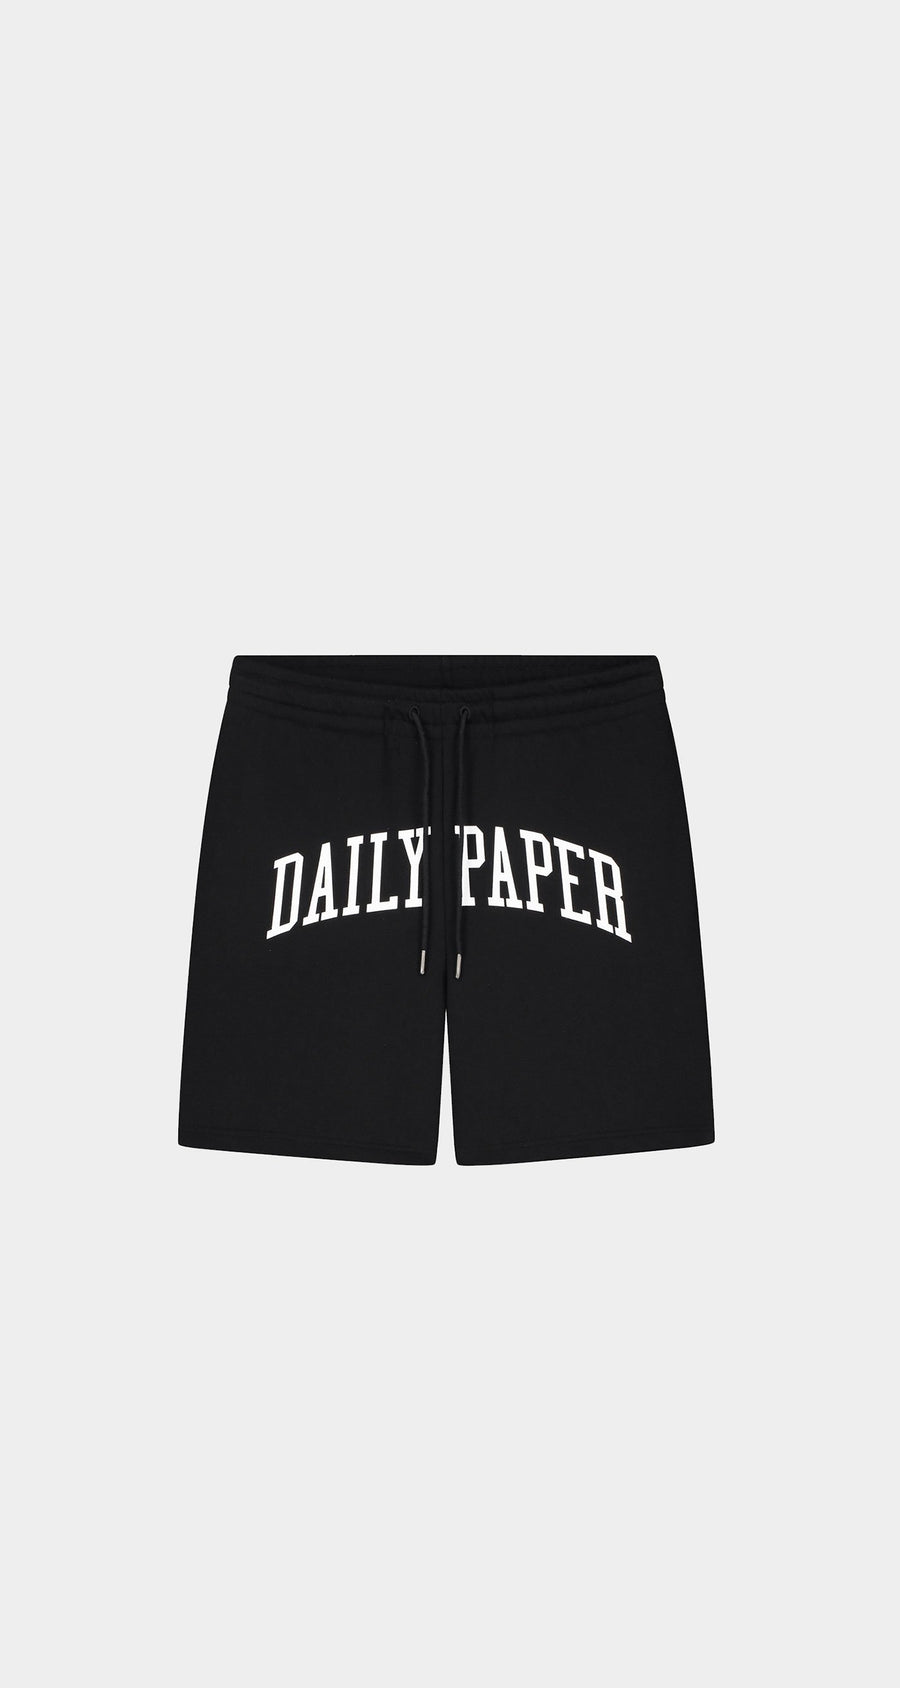 Daily Paper - Black Shorts - Men Front